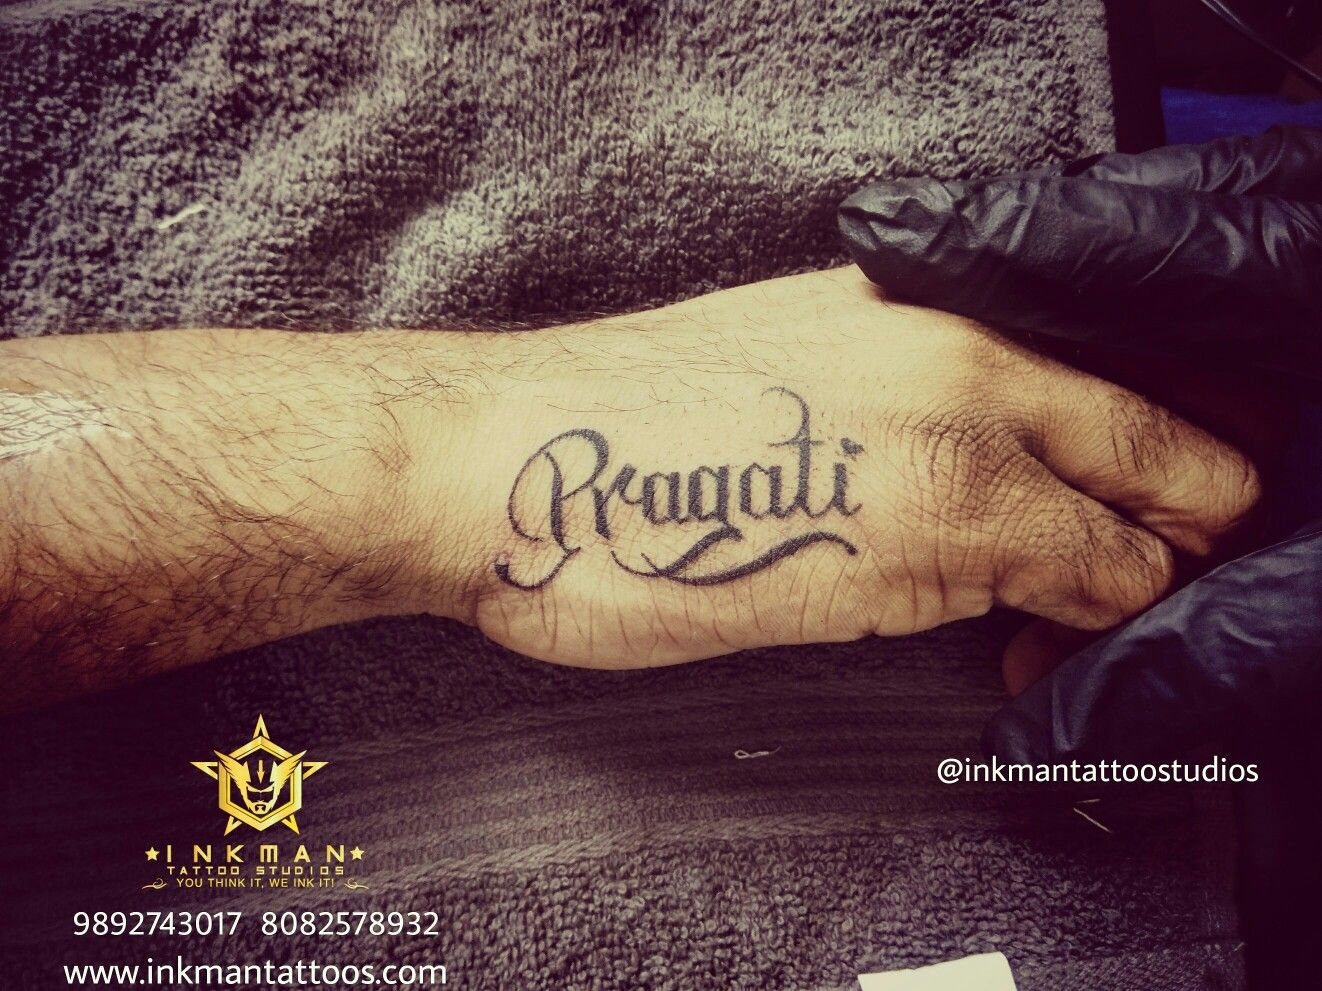 Calligraphy Tattoos Name Tattoo Name Tattoos Tattoo Classes In Thane Tattoo Designs Tattoo Rates In Thane Name Tattoo Name Tattoos Calligraphy Tattoo